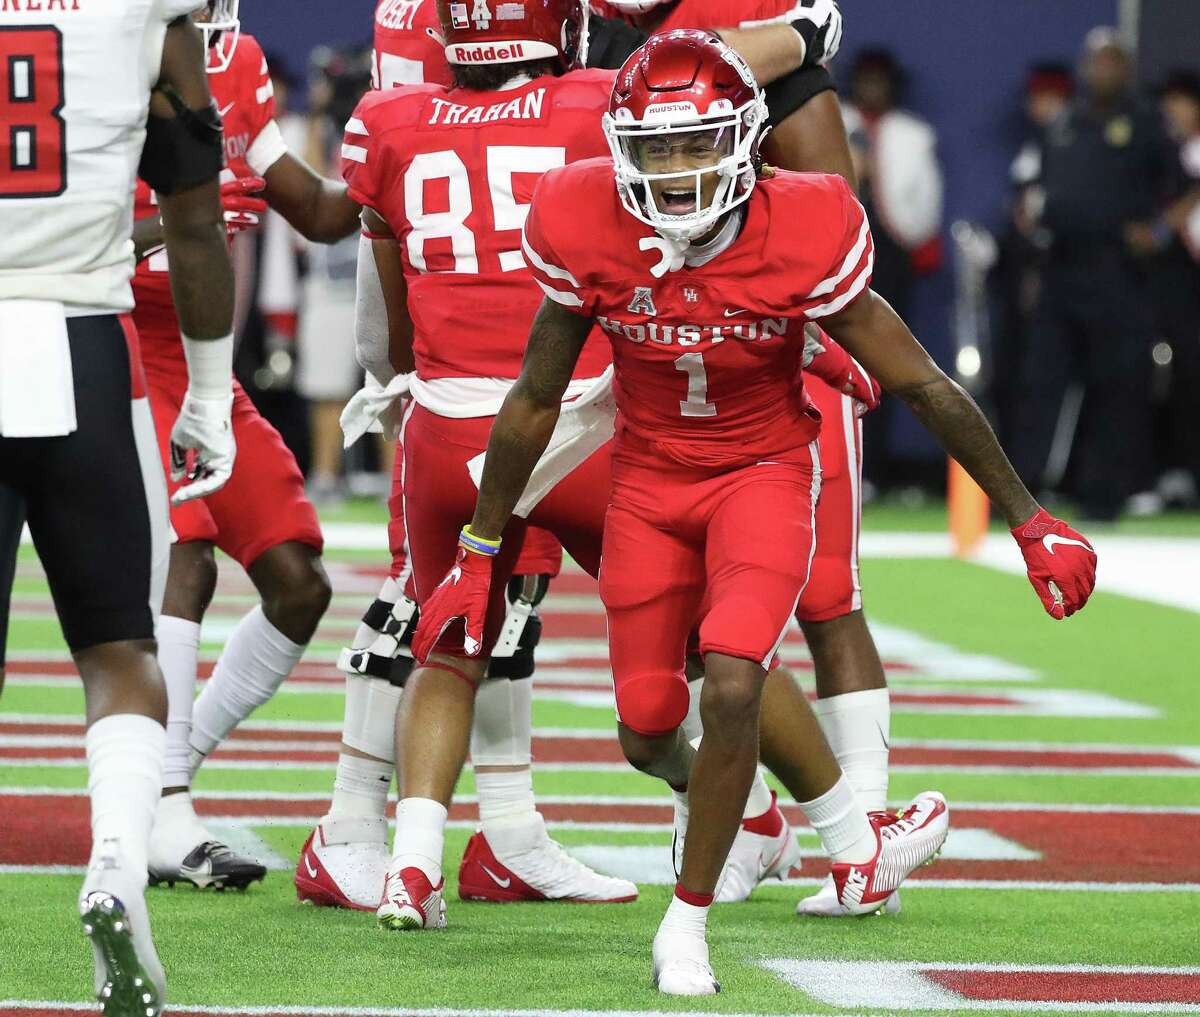 UH wide receiver Nathaniel Dell (1) celebrates a touchdown in the season opener against Texas Tech at NRG Stadium.